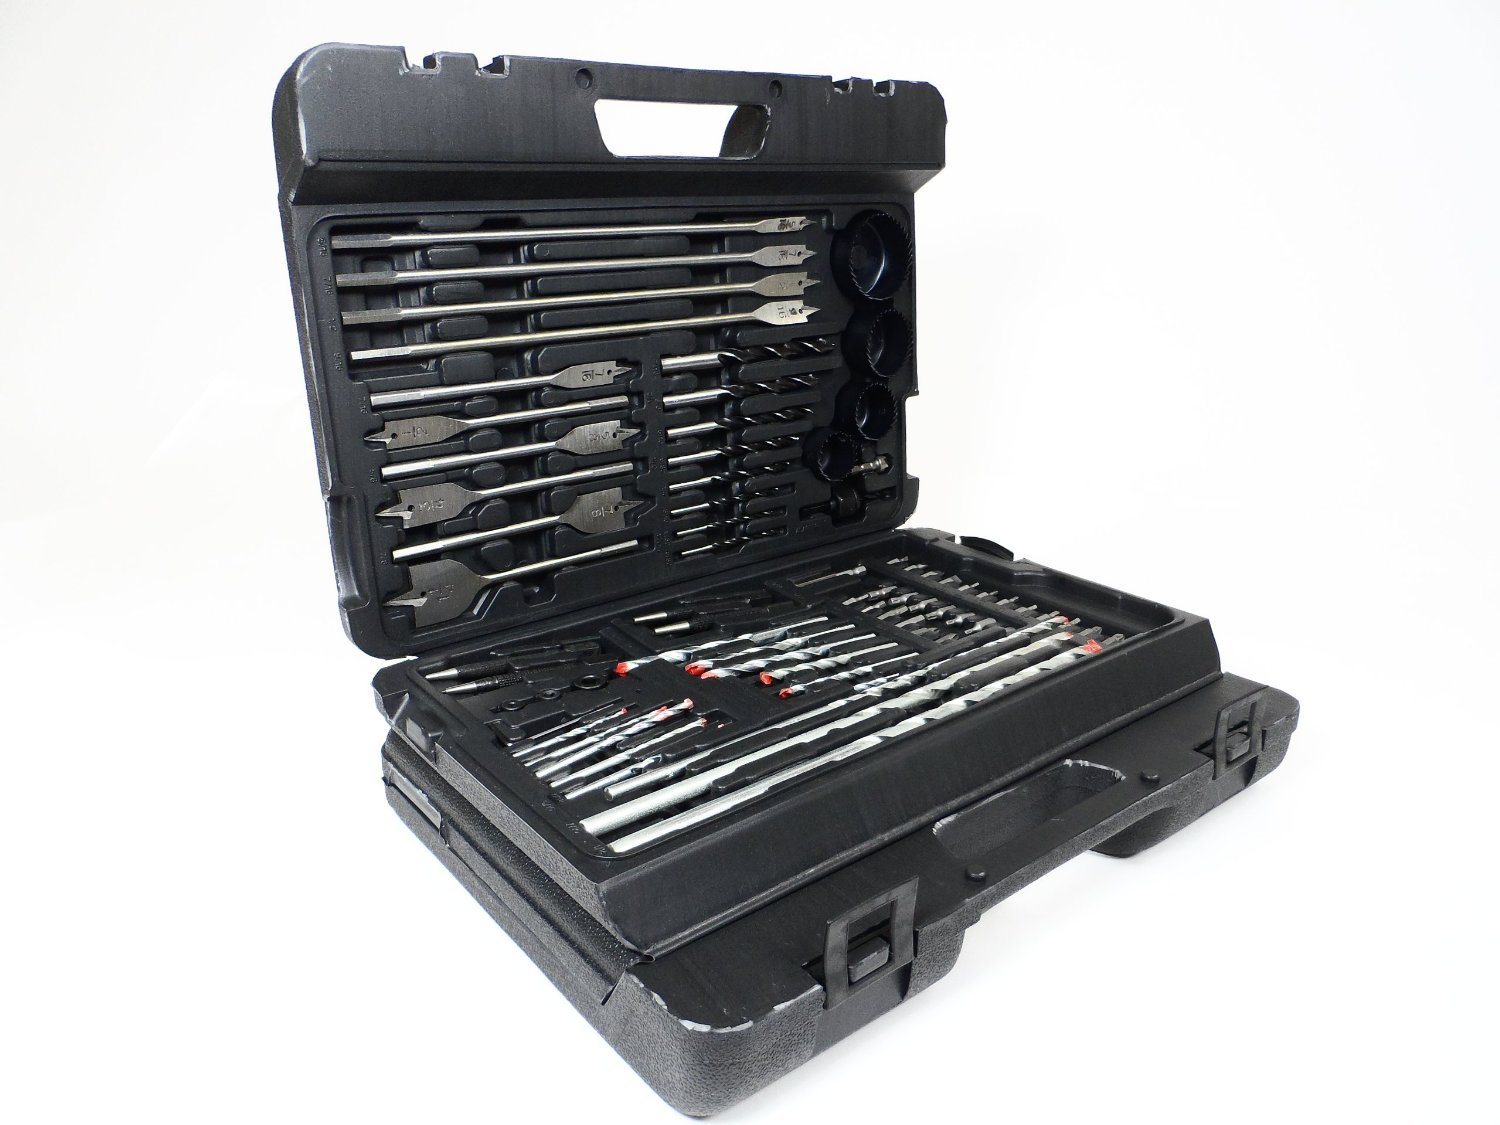 Complete Wood Working Drill Bit Set Professional Combination of Most Common Dril Bits 204 Piece Kit